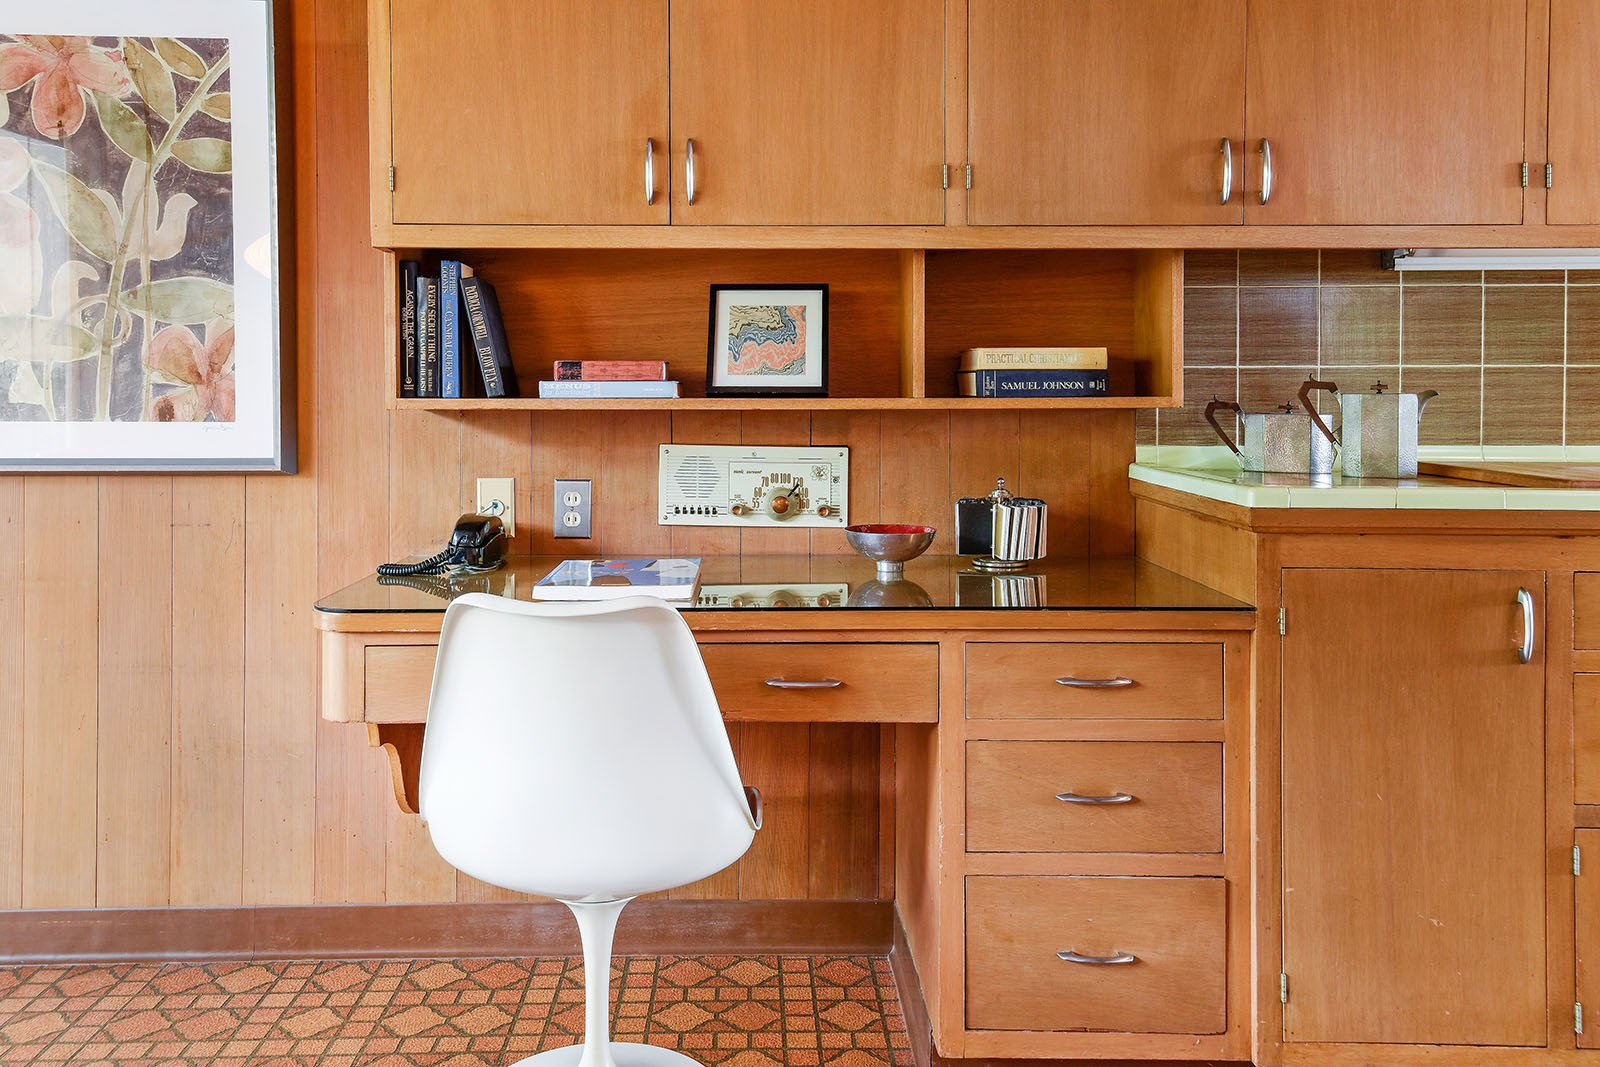 Kitchen, Tile Counter, Wood Cabinet, Vinyl Floor, Refrigerator, Cooktops, and Wall Oven Quintessential mid-century built-in desk in the kitchen  Vintage Hollywood in the Berkeley Hills